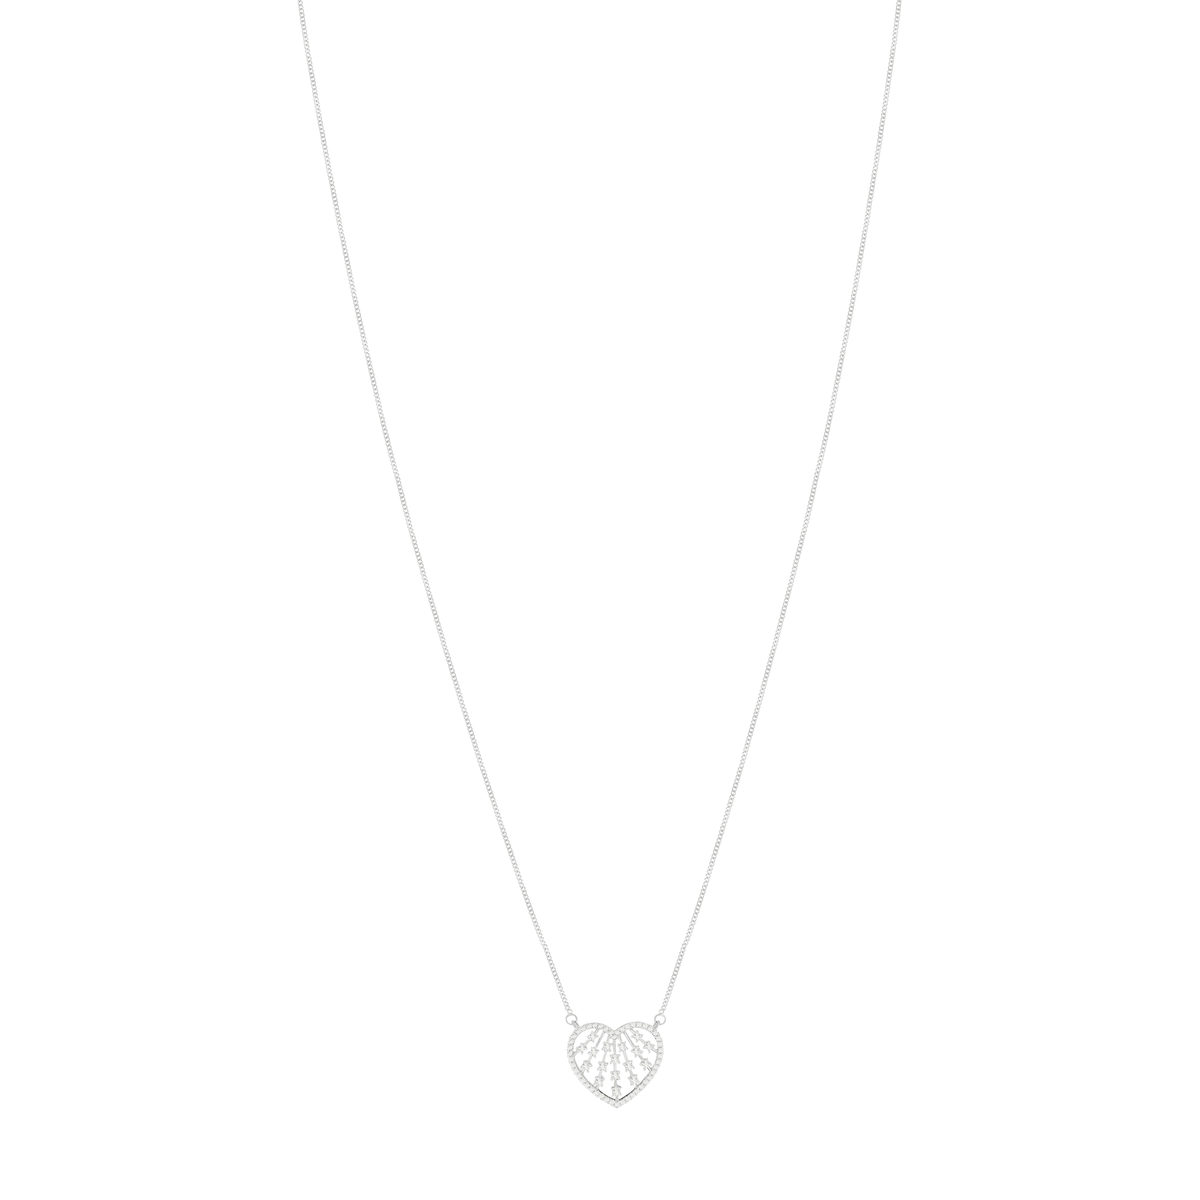 Collier MATY Or 750 blanc Diamants 45 cm - vue 1